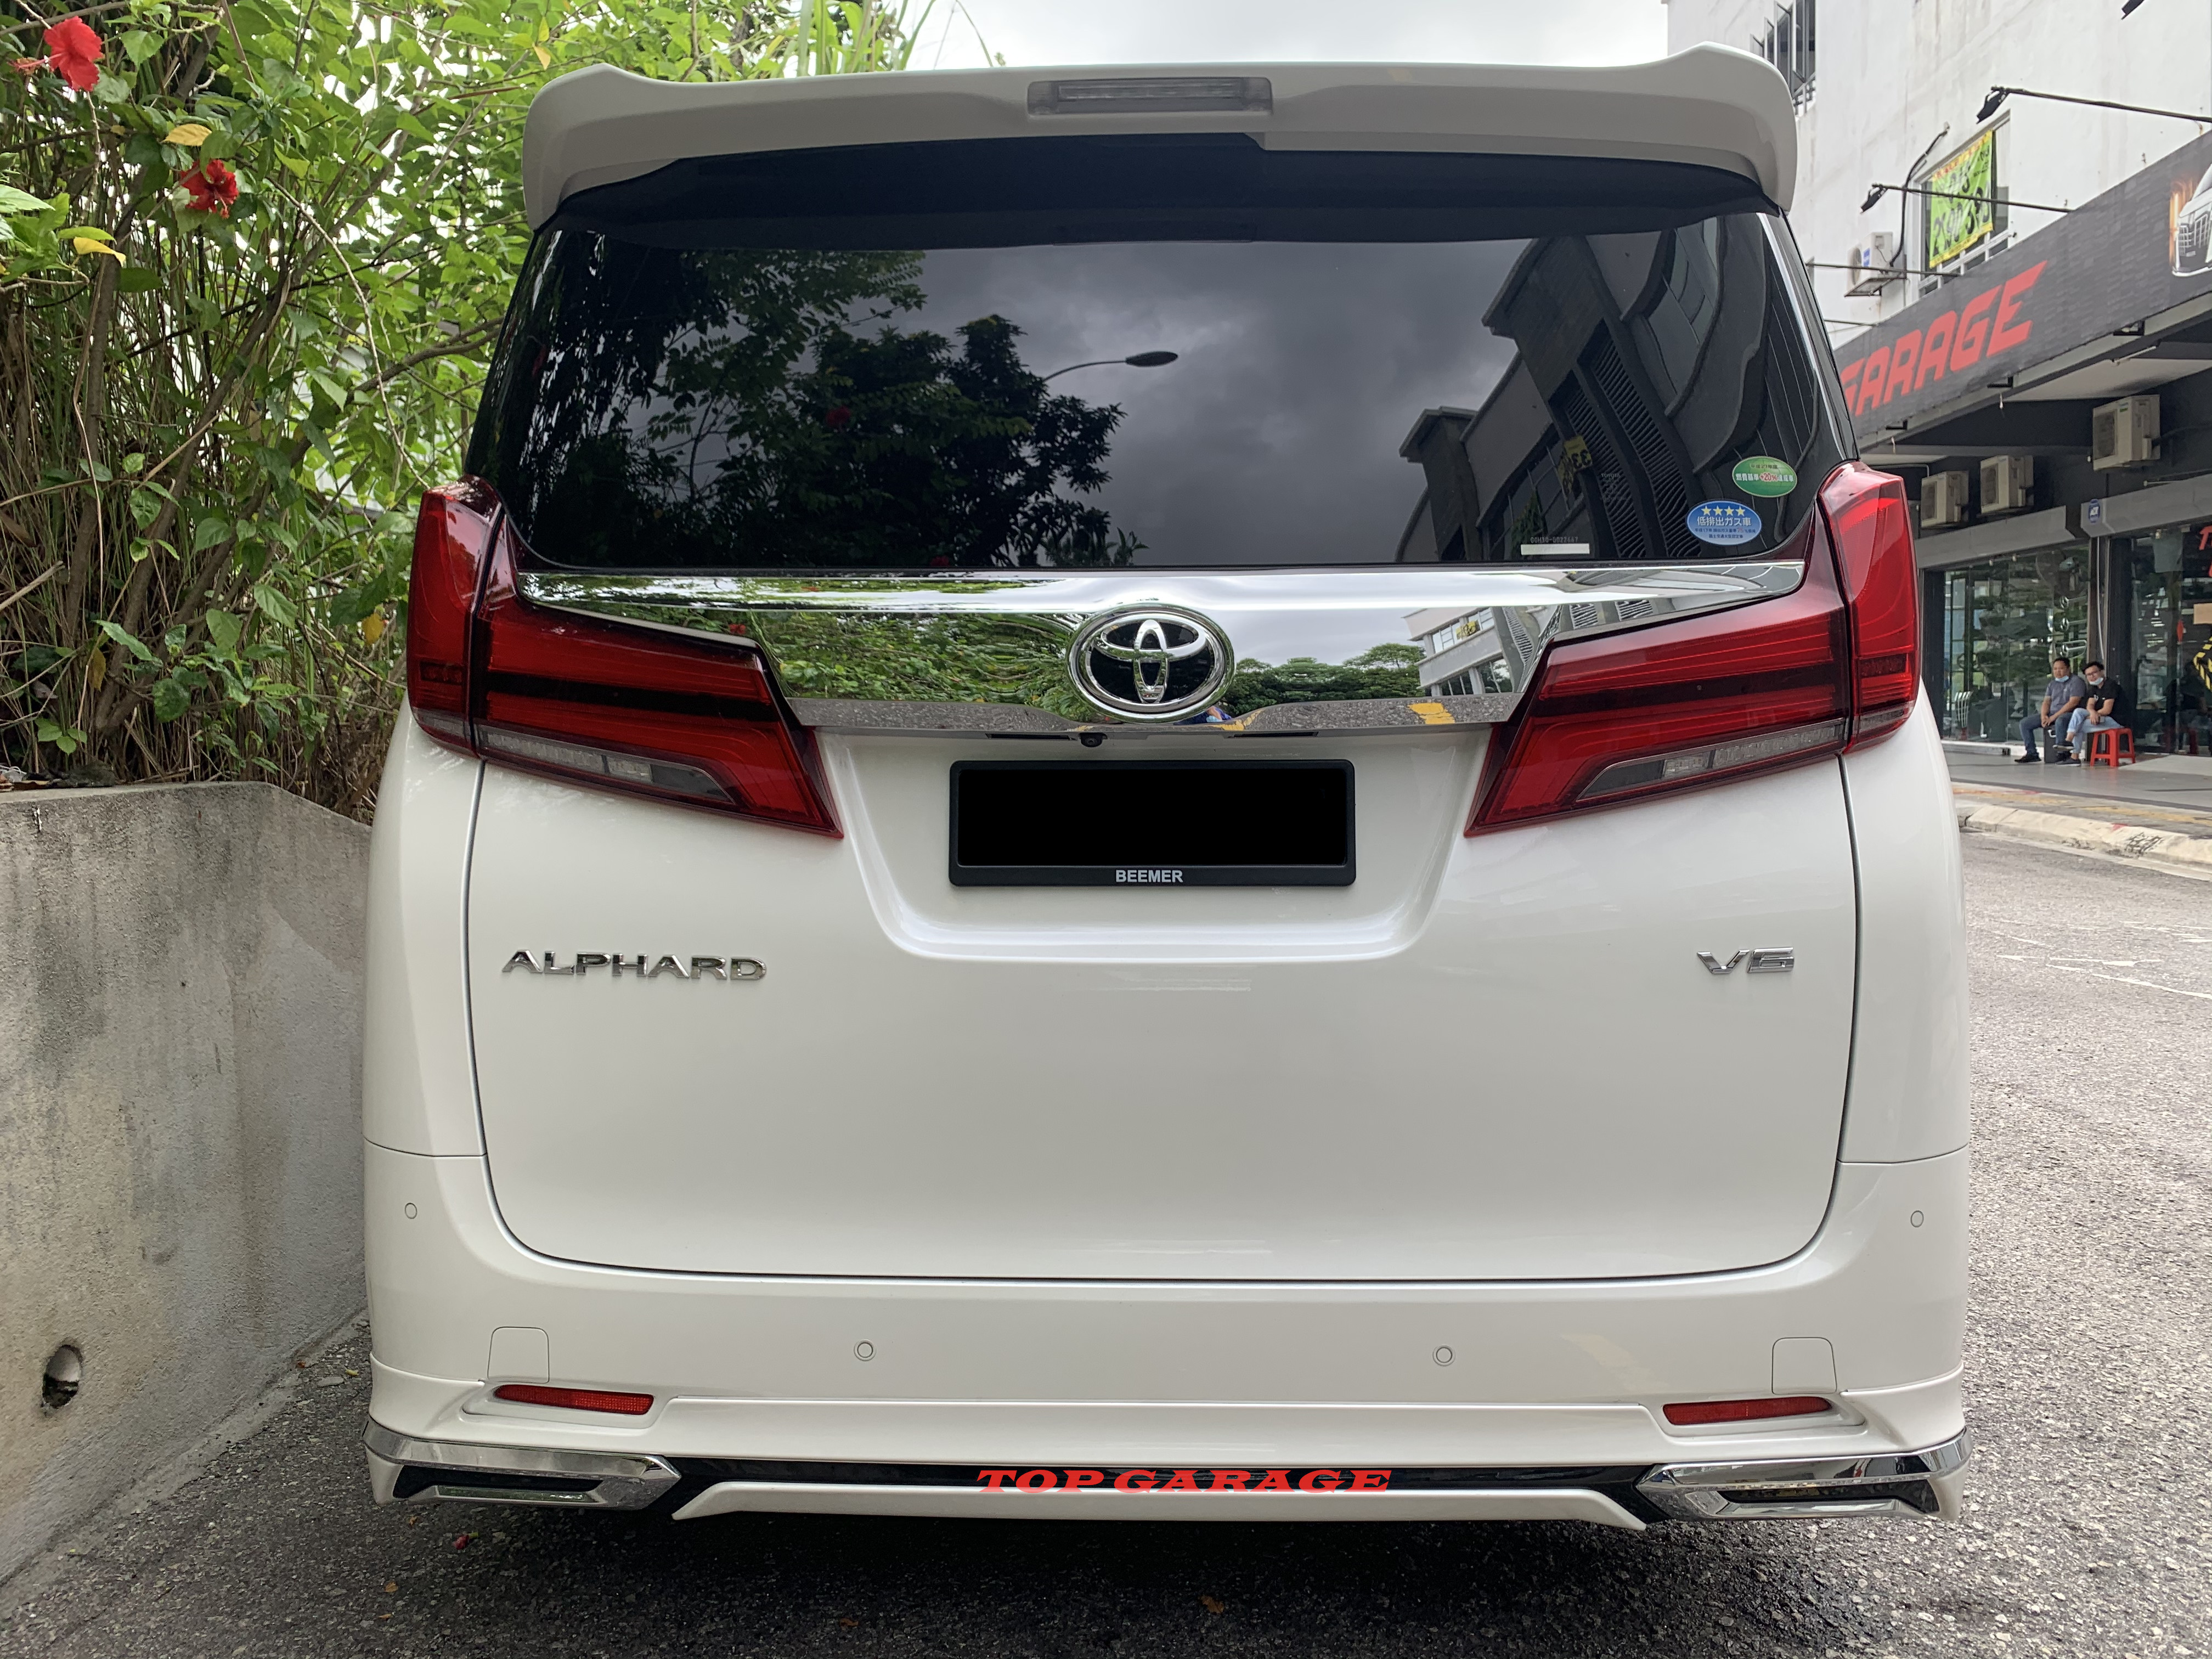 Toyota Alphard AGH30 2018 Normal Modellista Body kit With Painting